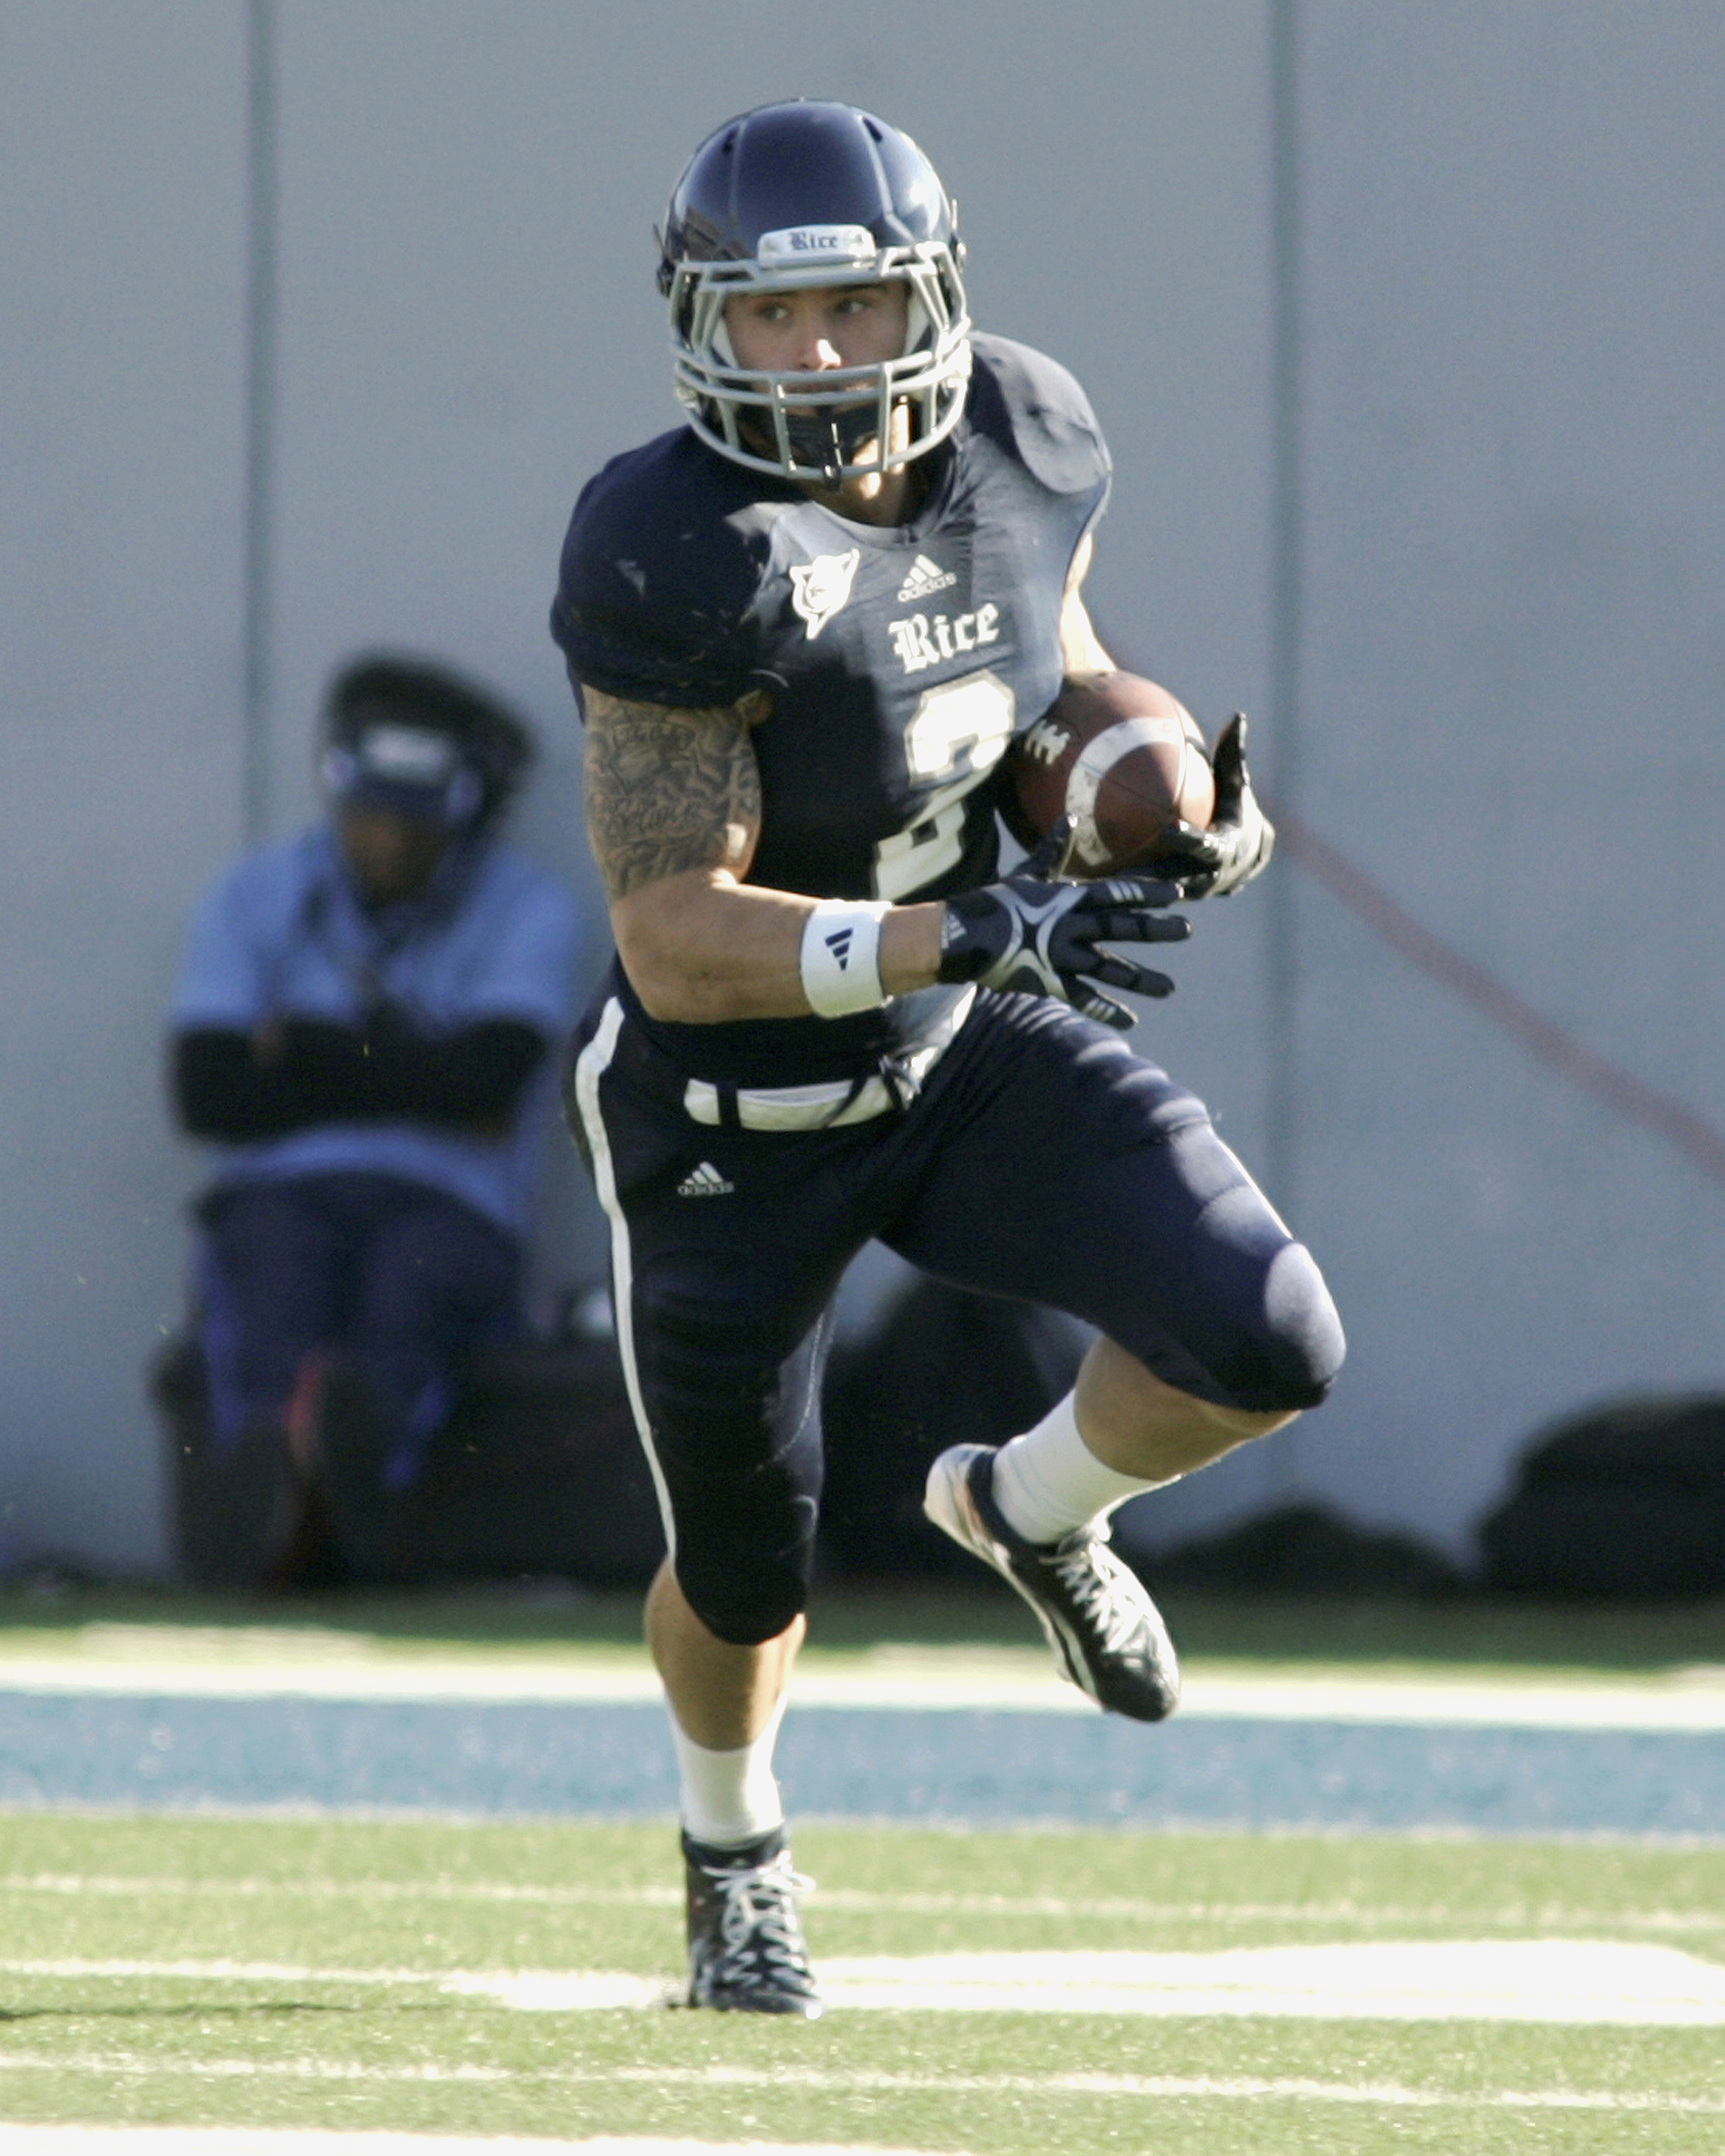 McGuffie gained more than 2,000 yards and scored 14 touchdowns as an Owl.